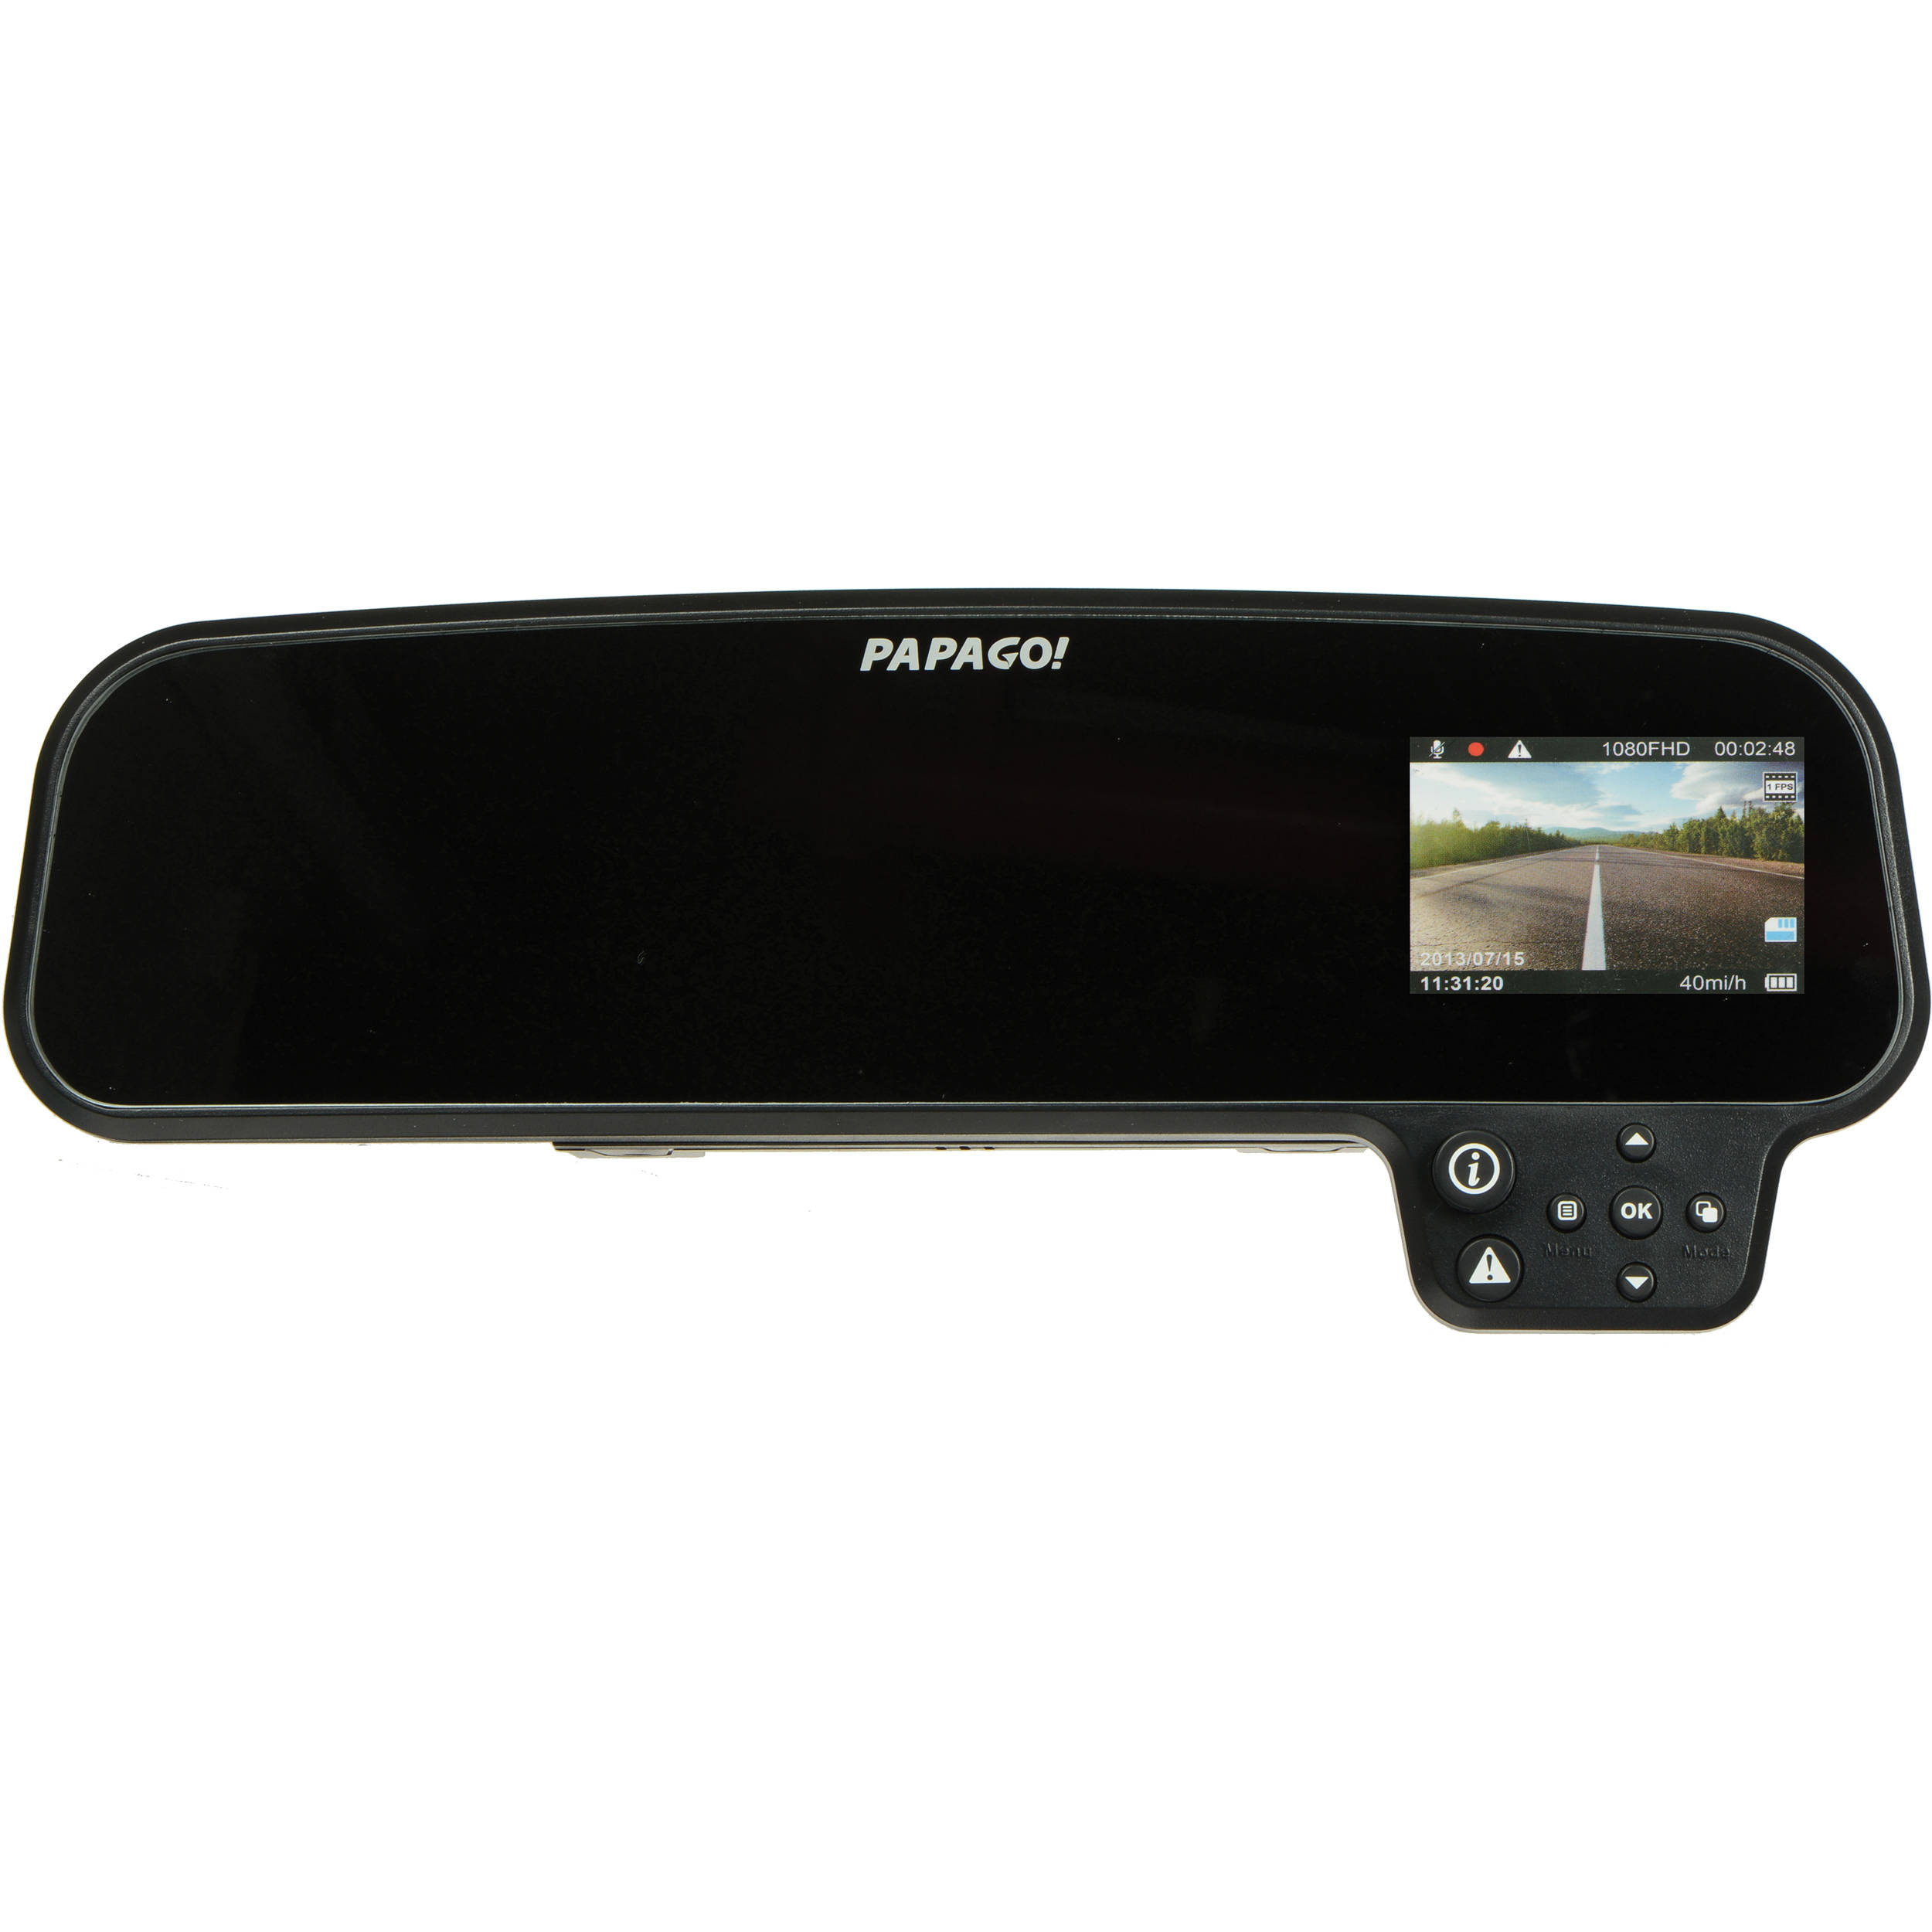 Papago Gosafe 260 Rear View Mirror Dash Camera Gs260 Us B Amp H